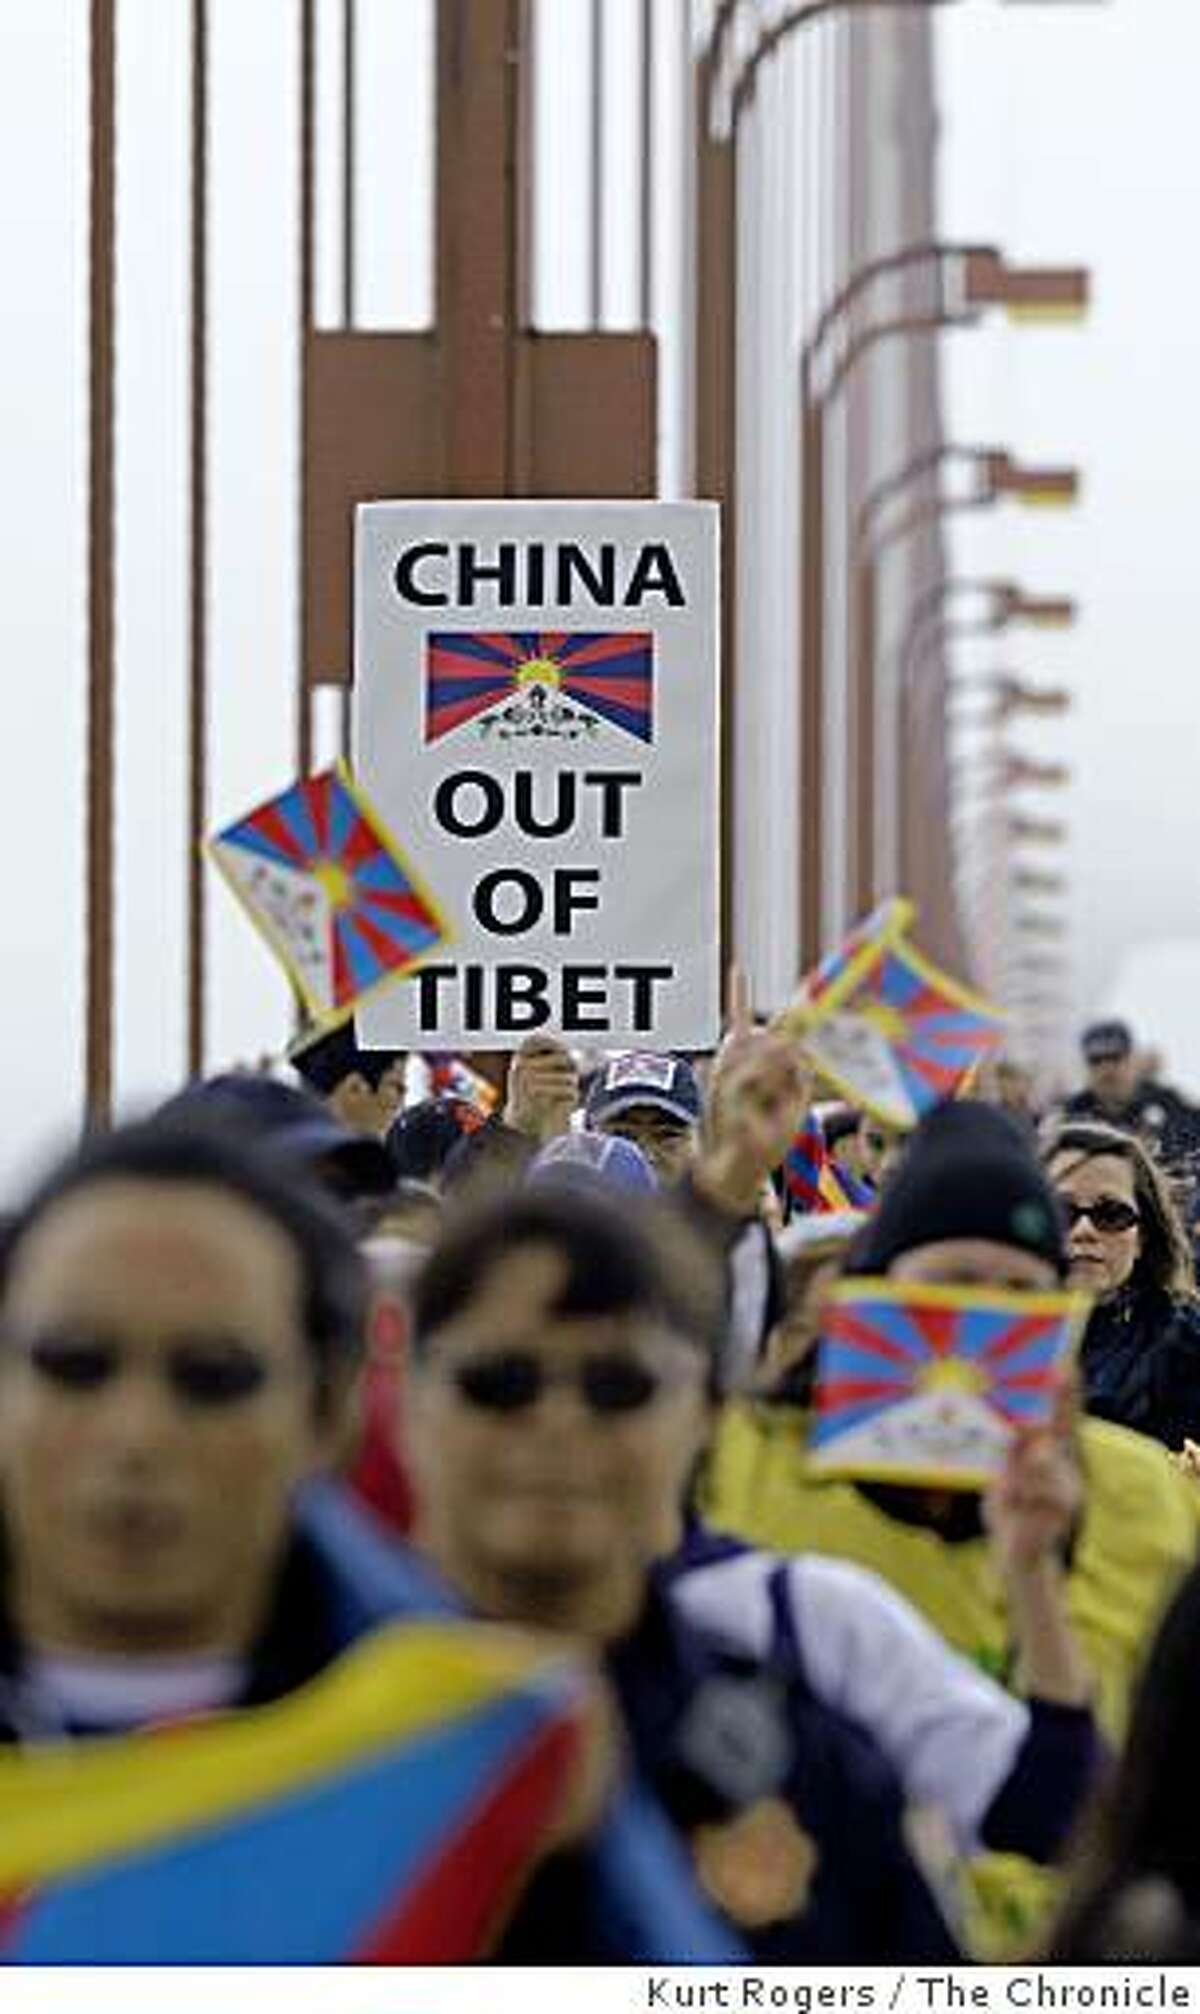 A few hundred protesters calling attention to human rights conditions in Tibet march over the Golden Gate Bridge.